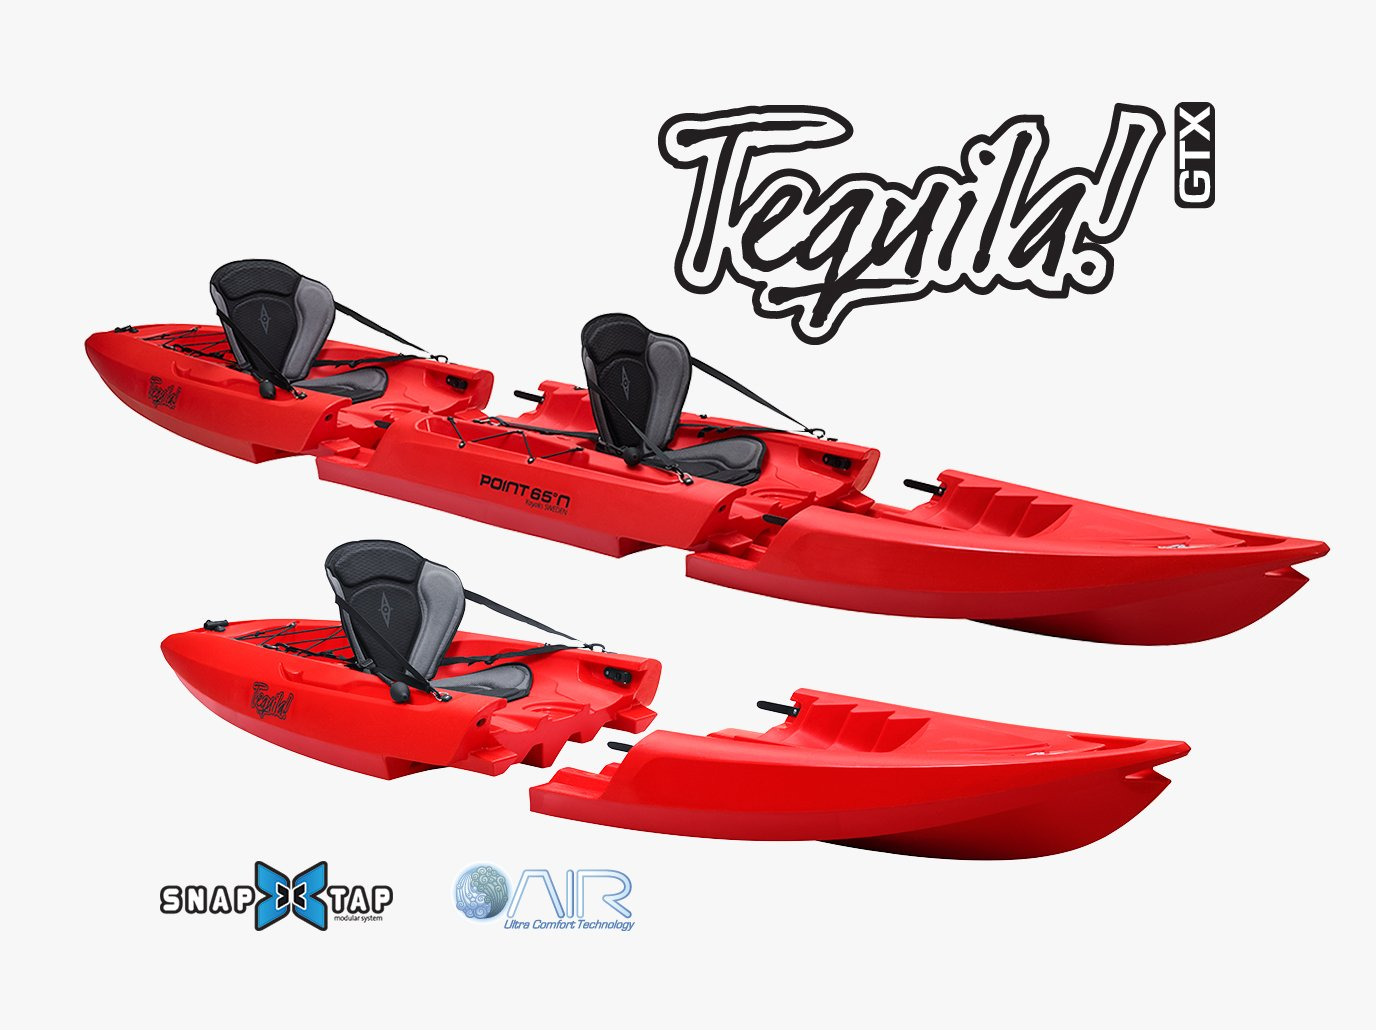 e1c80be591 GTX Solo/Tandem Sit-On-Top Modular Kayak - Ships from USA – Point 65 Kayaks  Sweden Global